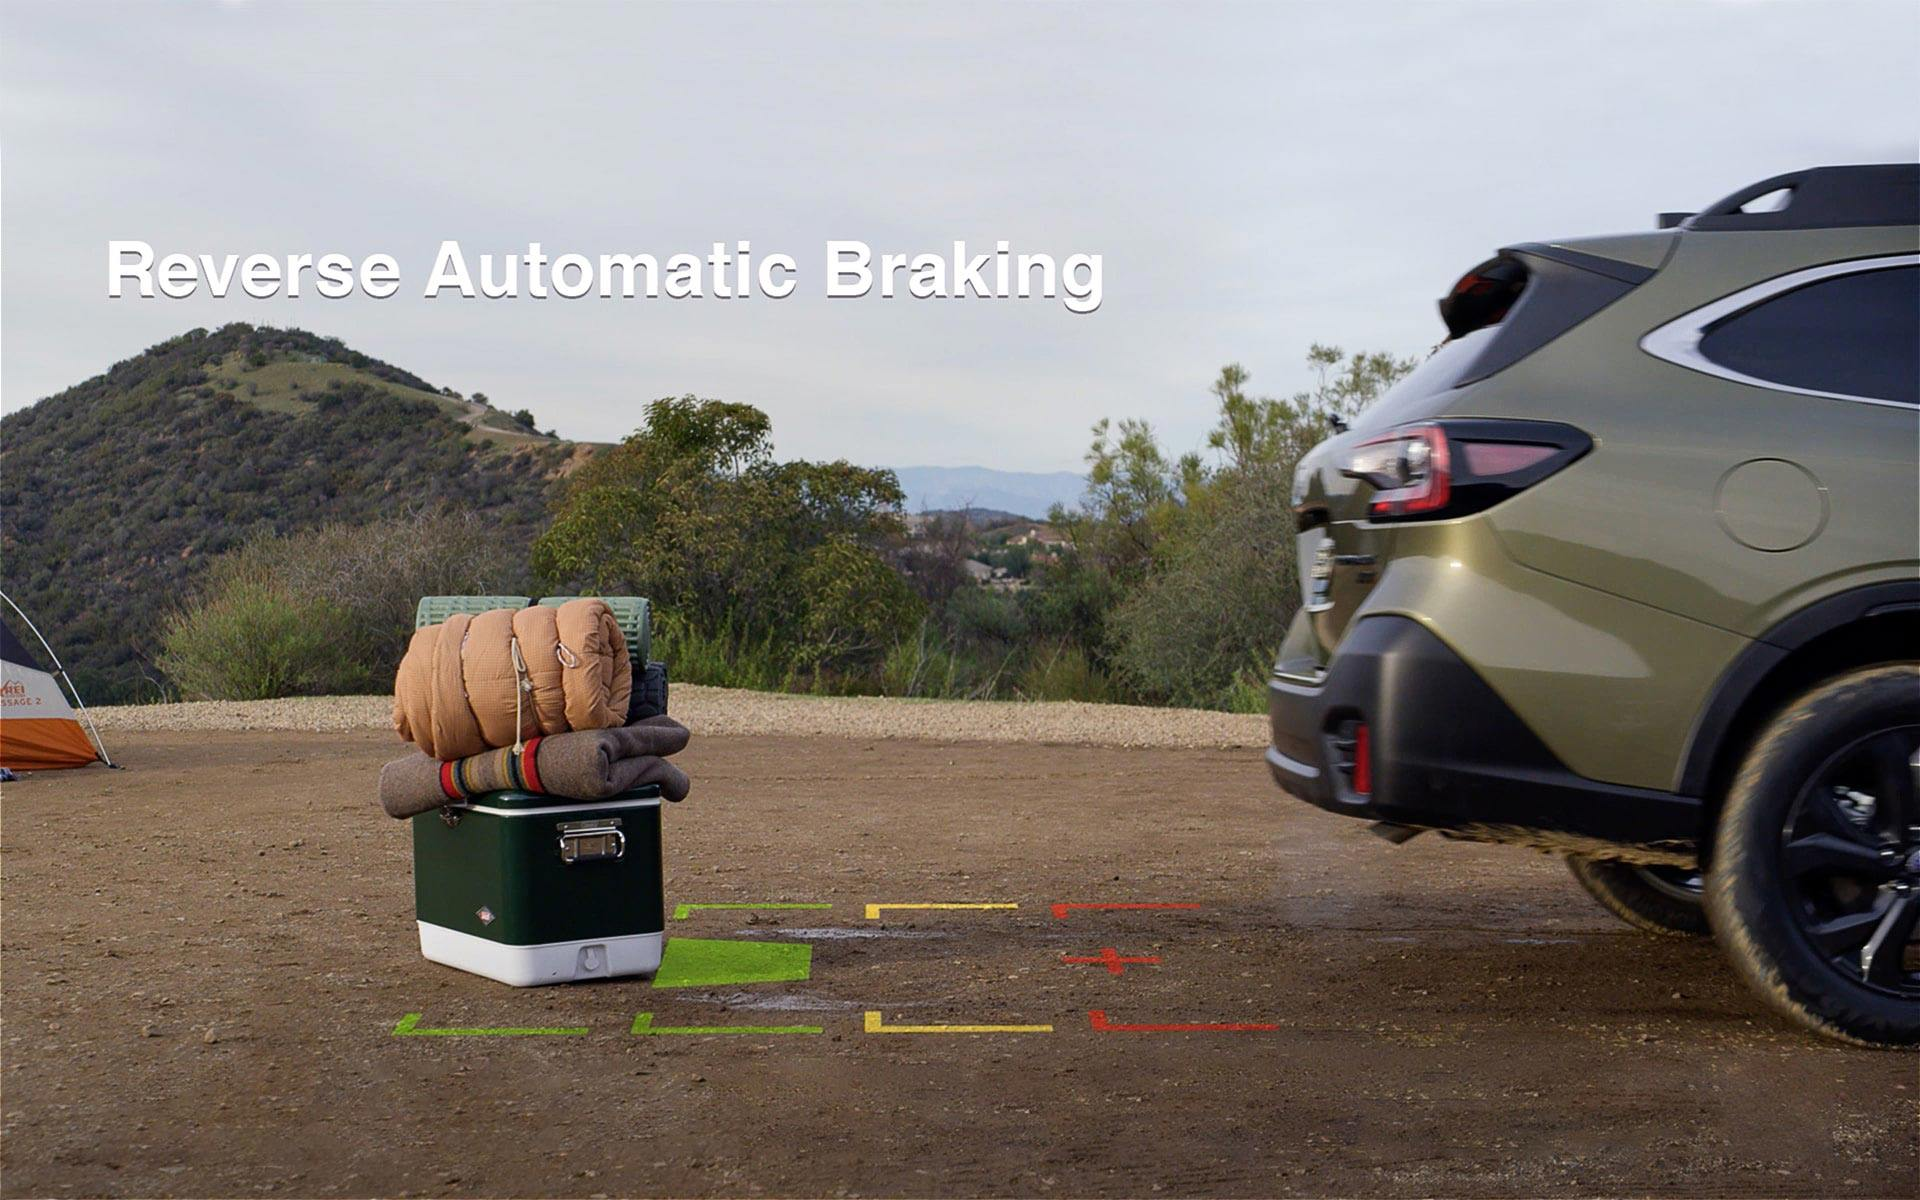 Available Reverse Automatic Braking